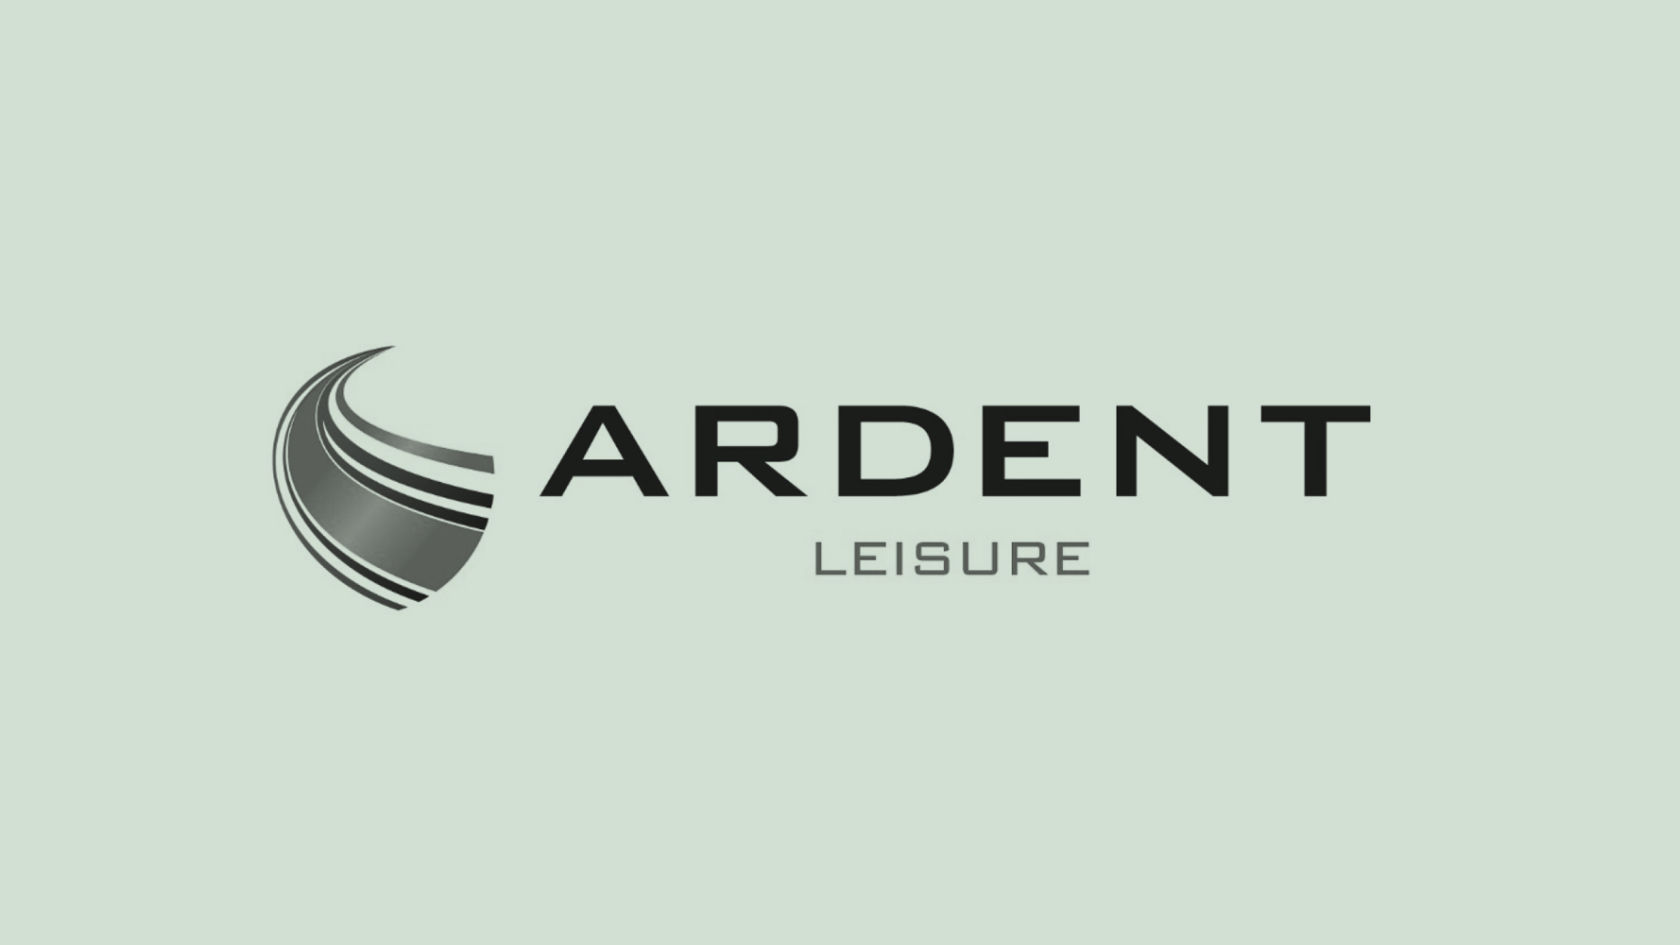 Ardent Leisure – Shareholding in JV with Ariadne